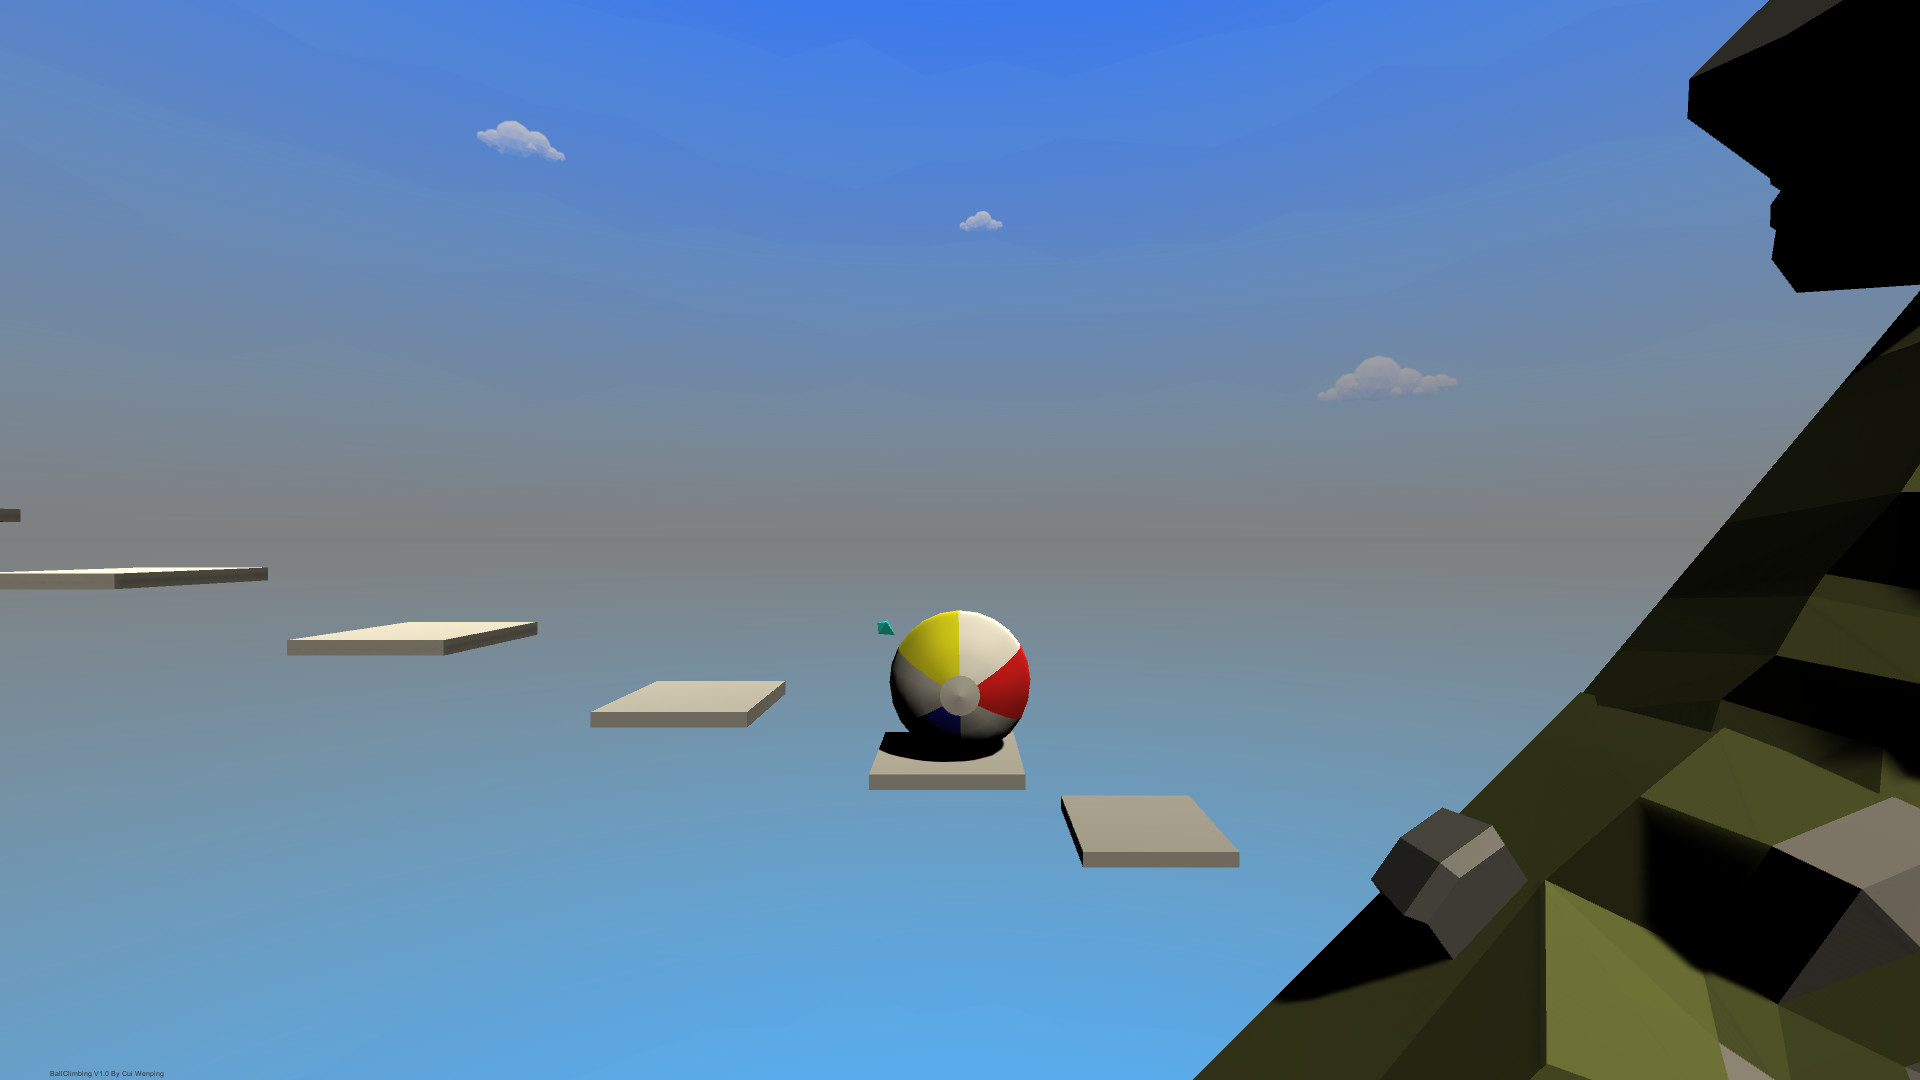 BallClimbing screenshot